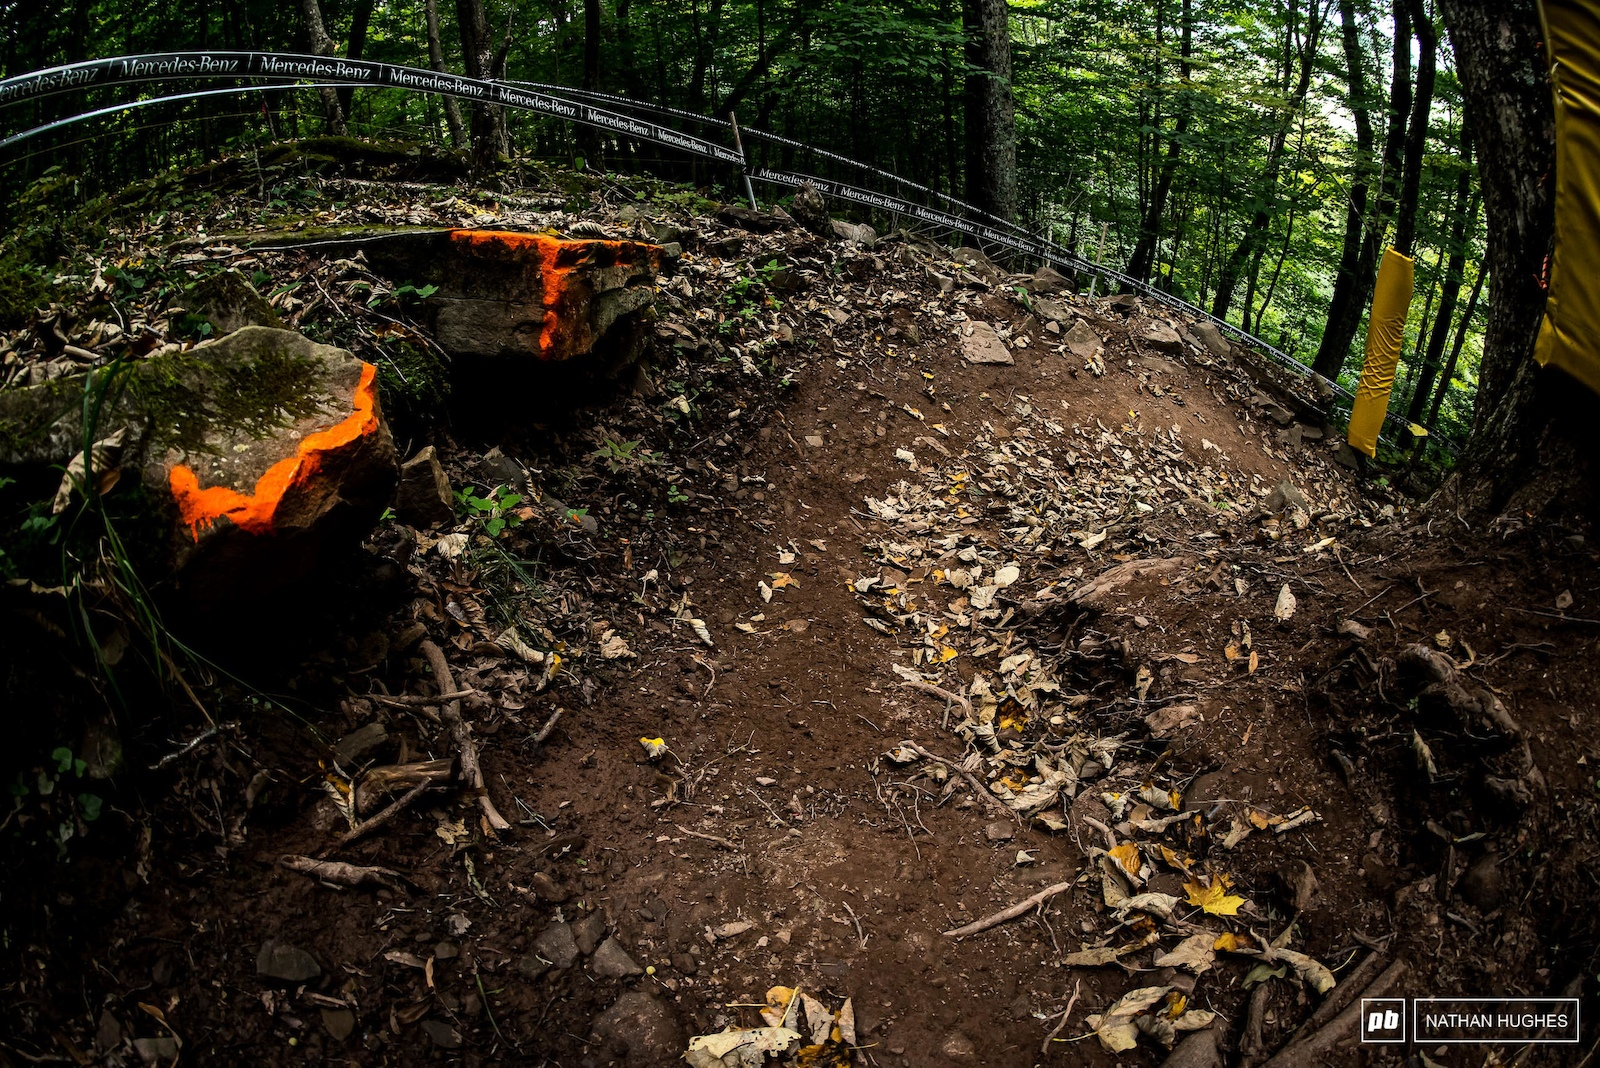 A beautifully shaped berm before things get super technical.